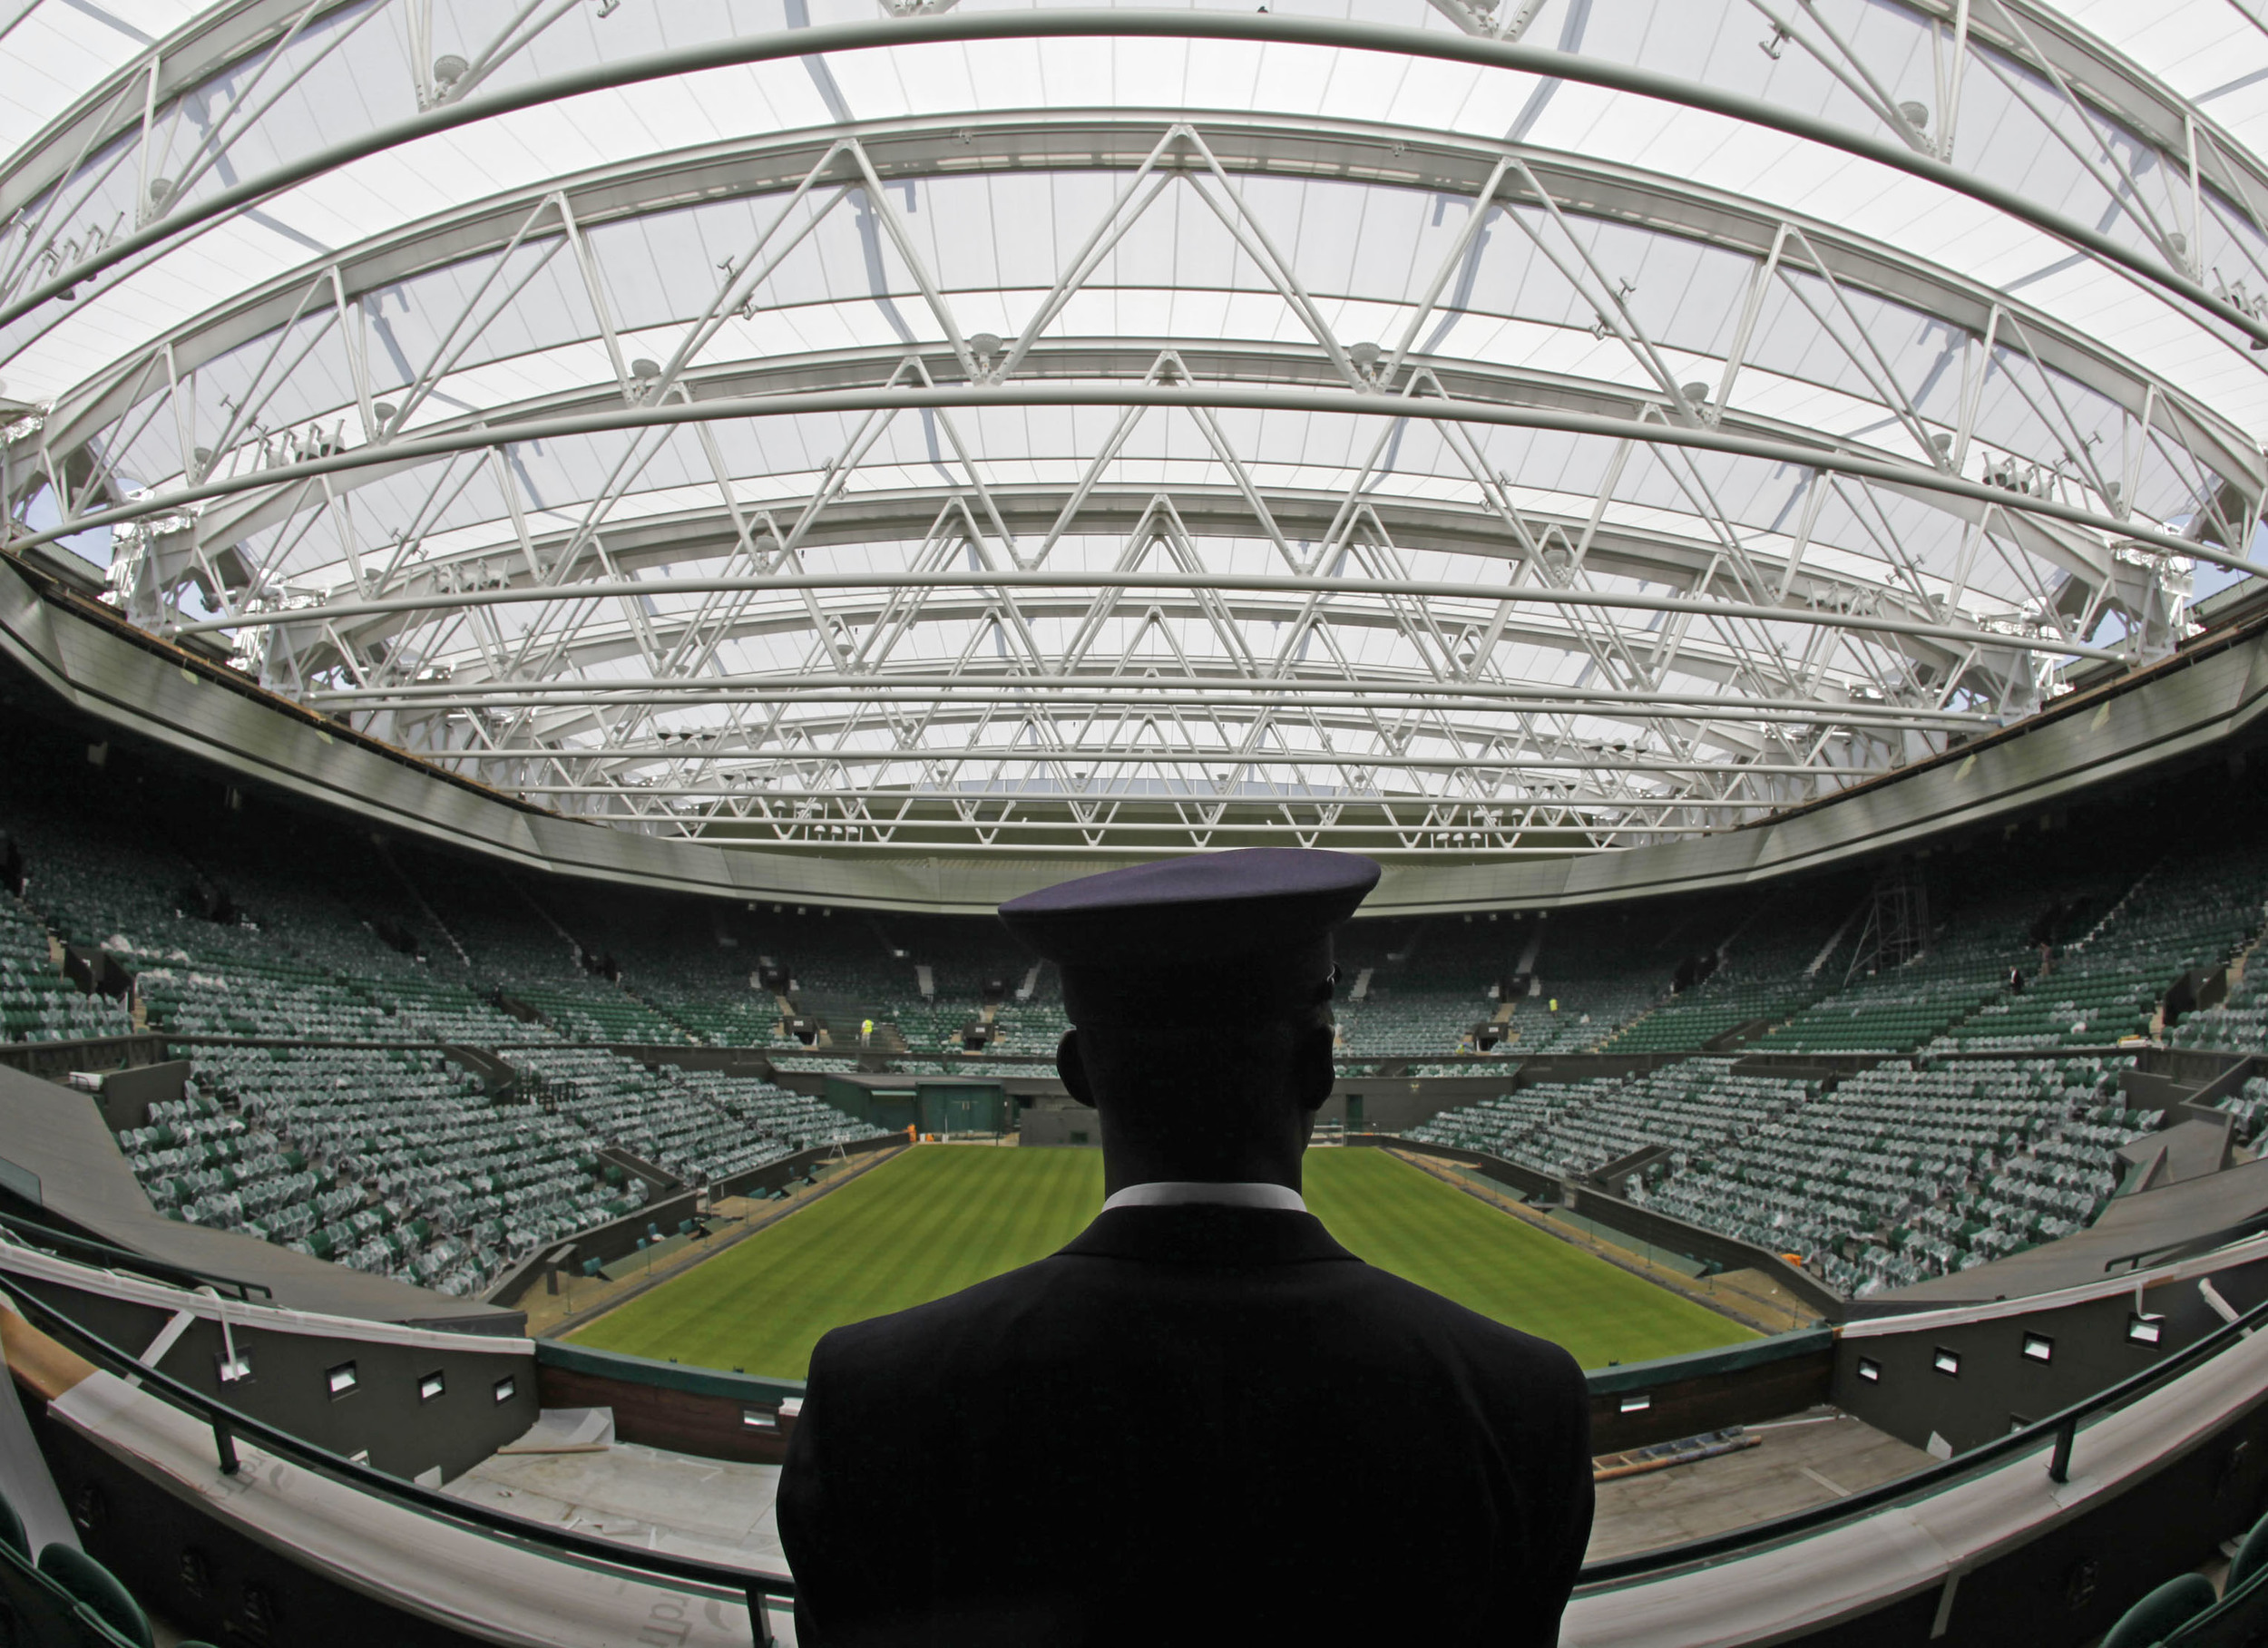 A security guard stands underneath the new Centre Court retractable roof at the All England Lawn Tennis Club in London (Courtesy of Reuters)